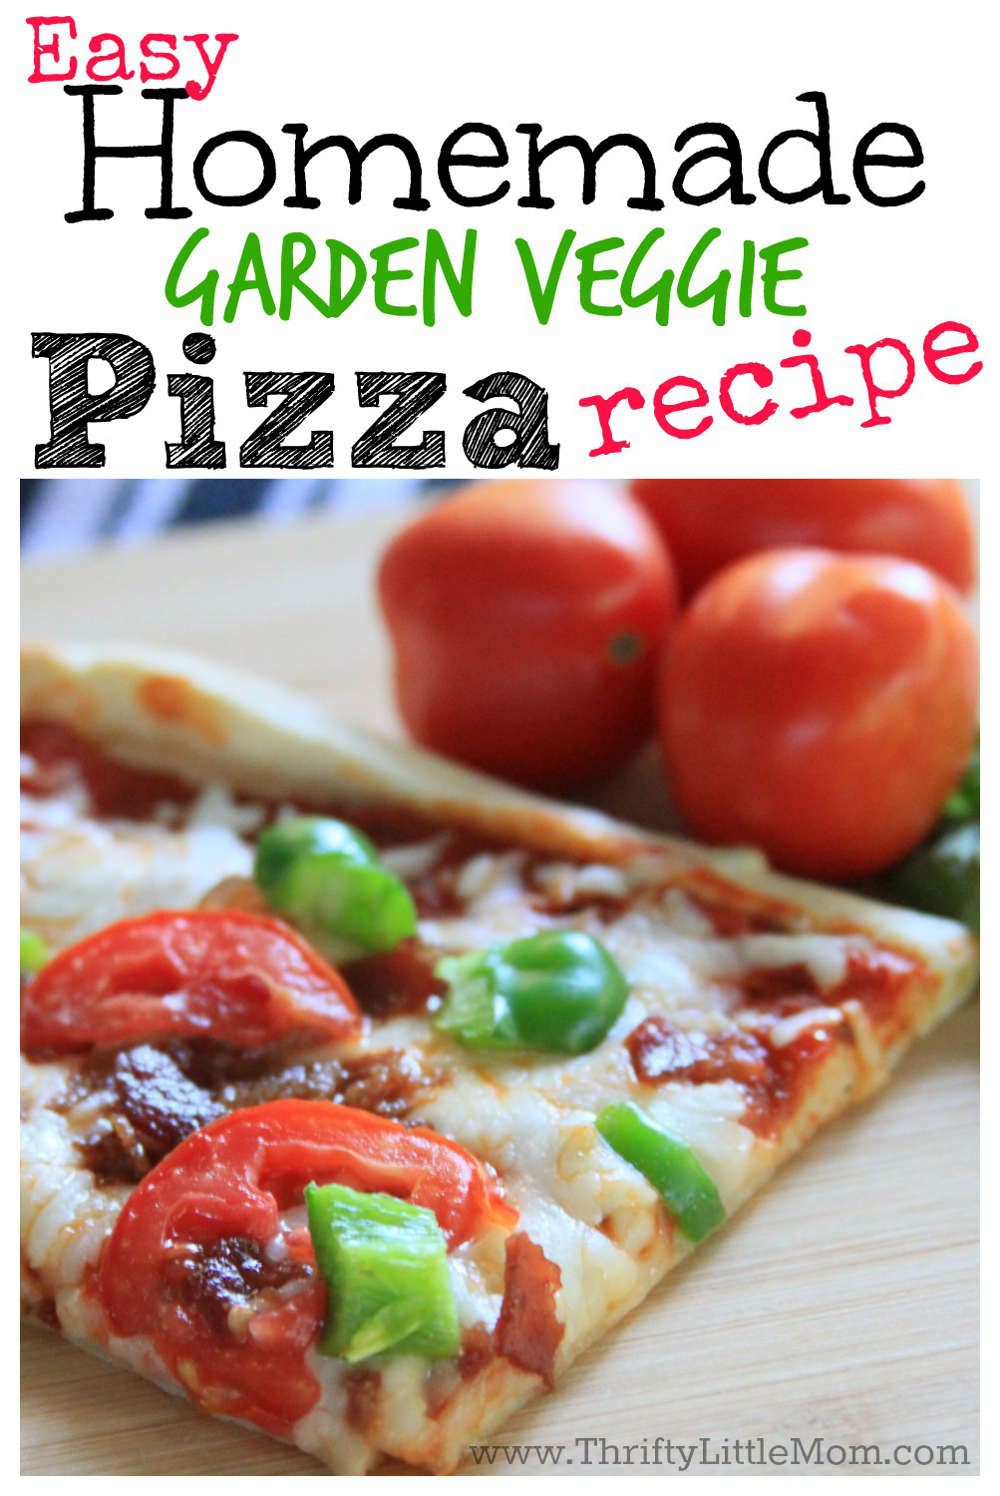 Easy Homemade Garden Veggie Pizza Recipe. This is a really quick and delicious pizza recipe to keep around for the nights when you need a really quick, crowd pleasing dinner when you are short on time and energy.